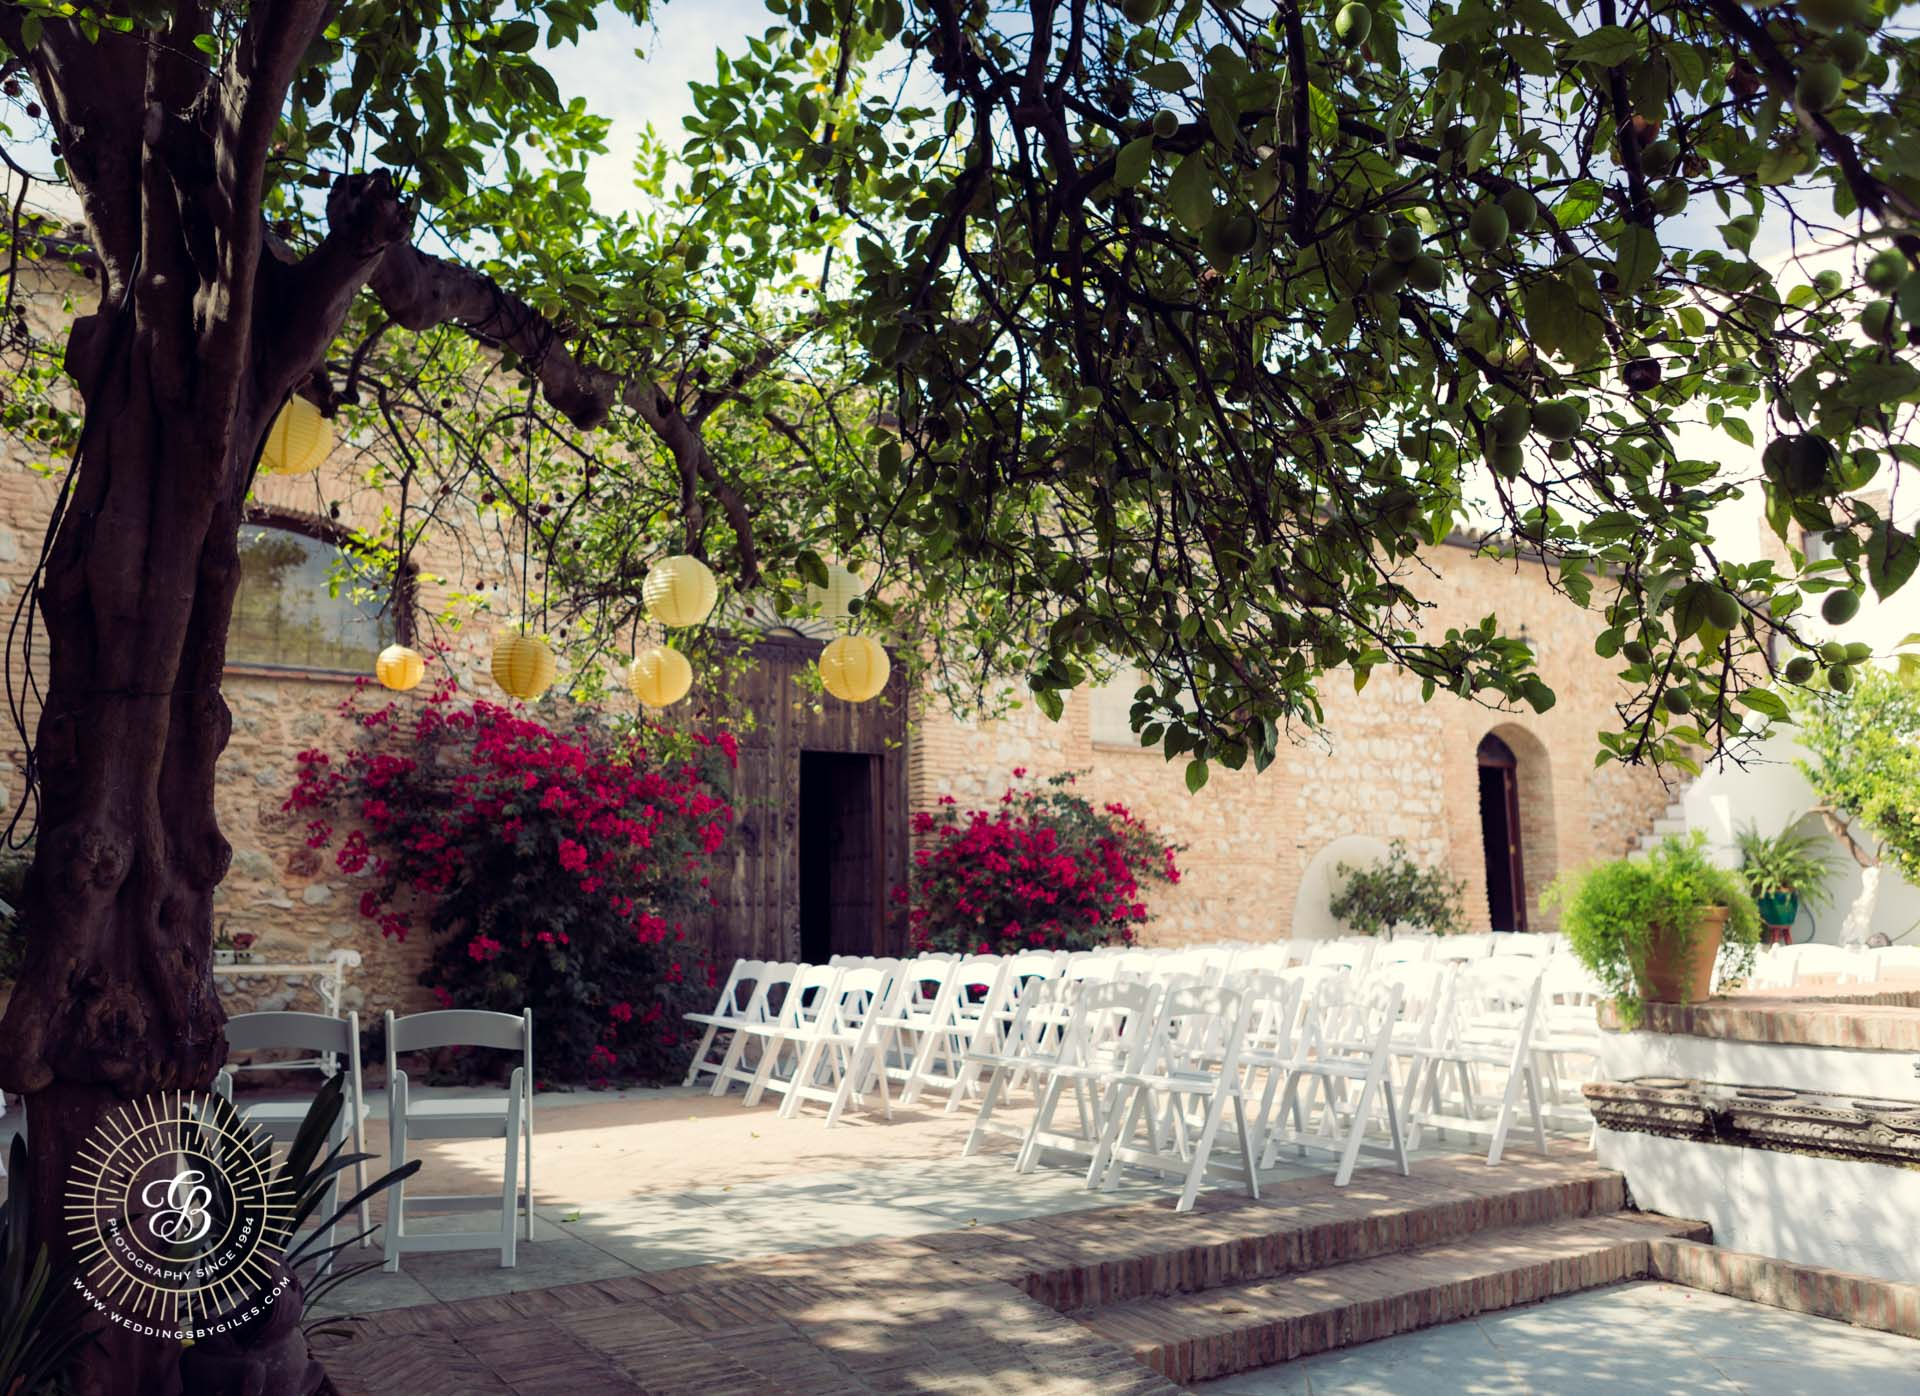 wedding setup in Spanish Cortico courtyard